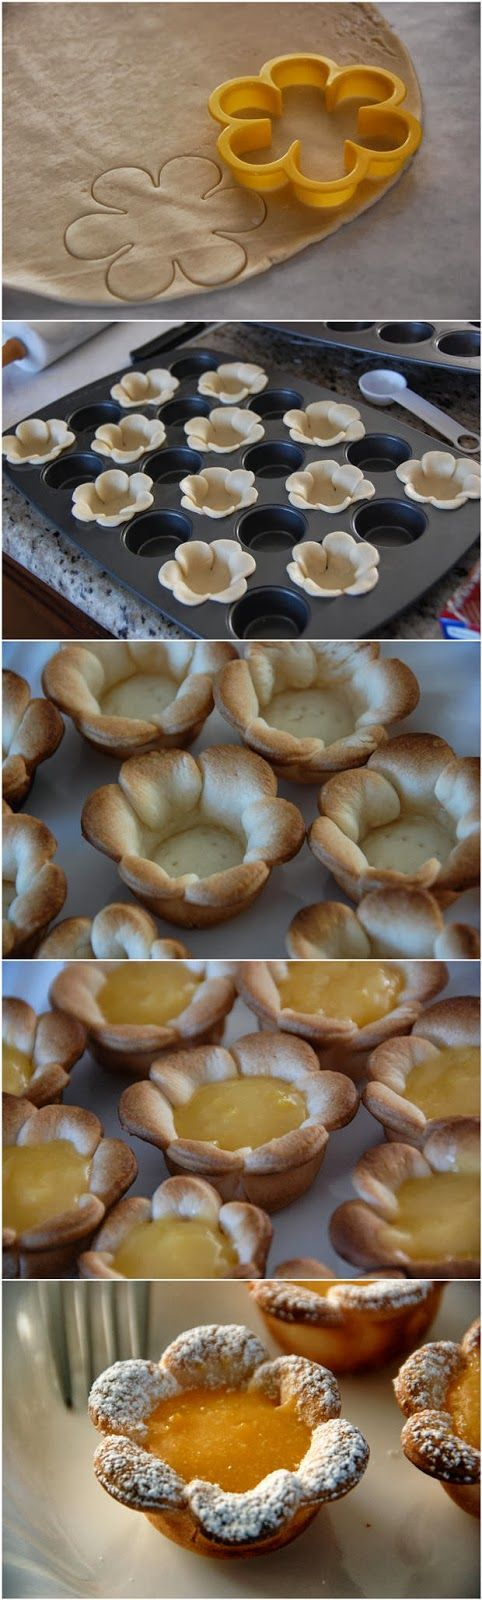 Delicious! Used a lemon curd recipe from Cooks Illustrated for the curd and just Pillsbury Pie Dough for the shells. http://www.kissrecipe.com/2013/10/flower-shaped-mini-lemon-curd-tarts.html